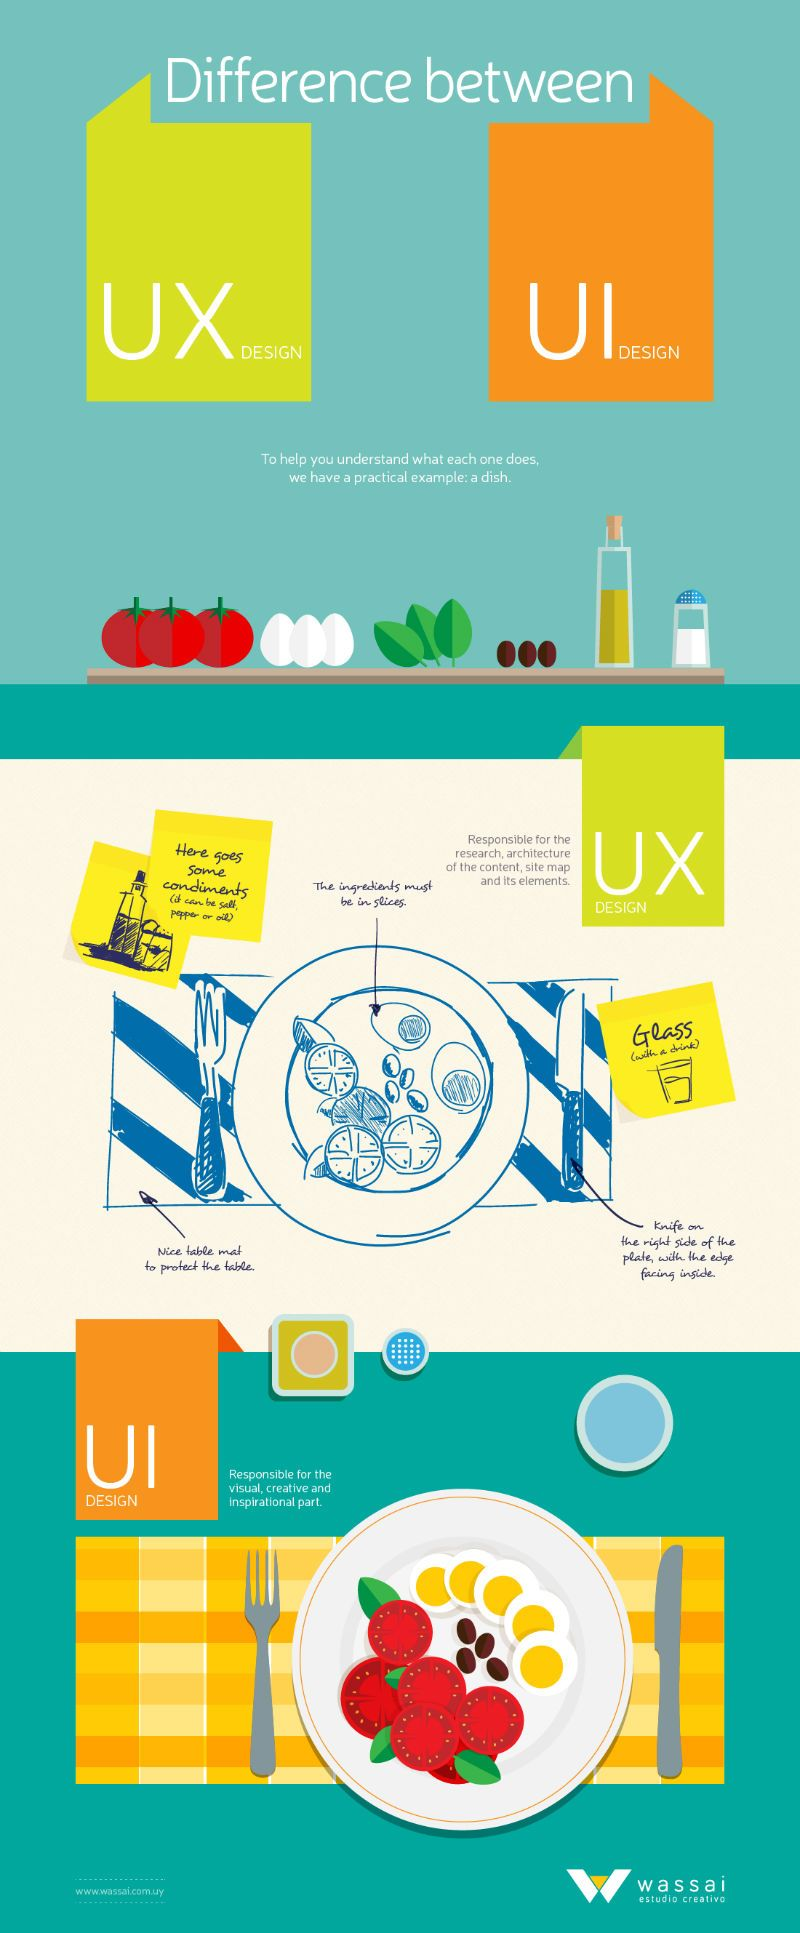 17 Best images about UX - UI - IxD on Pinterest | User experience ...